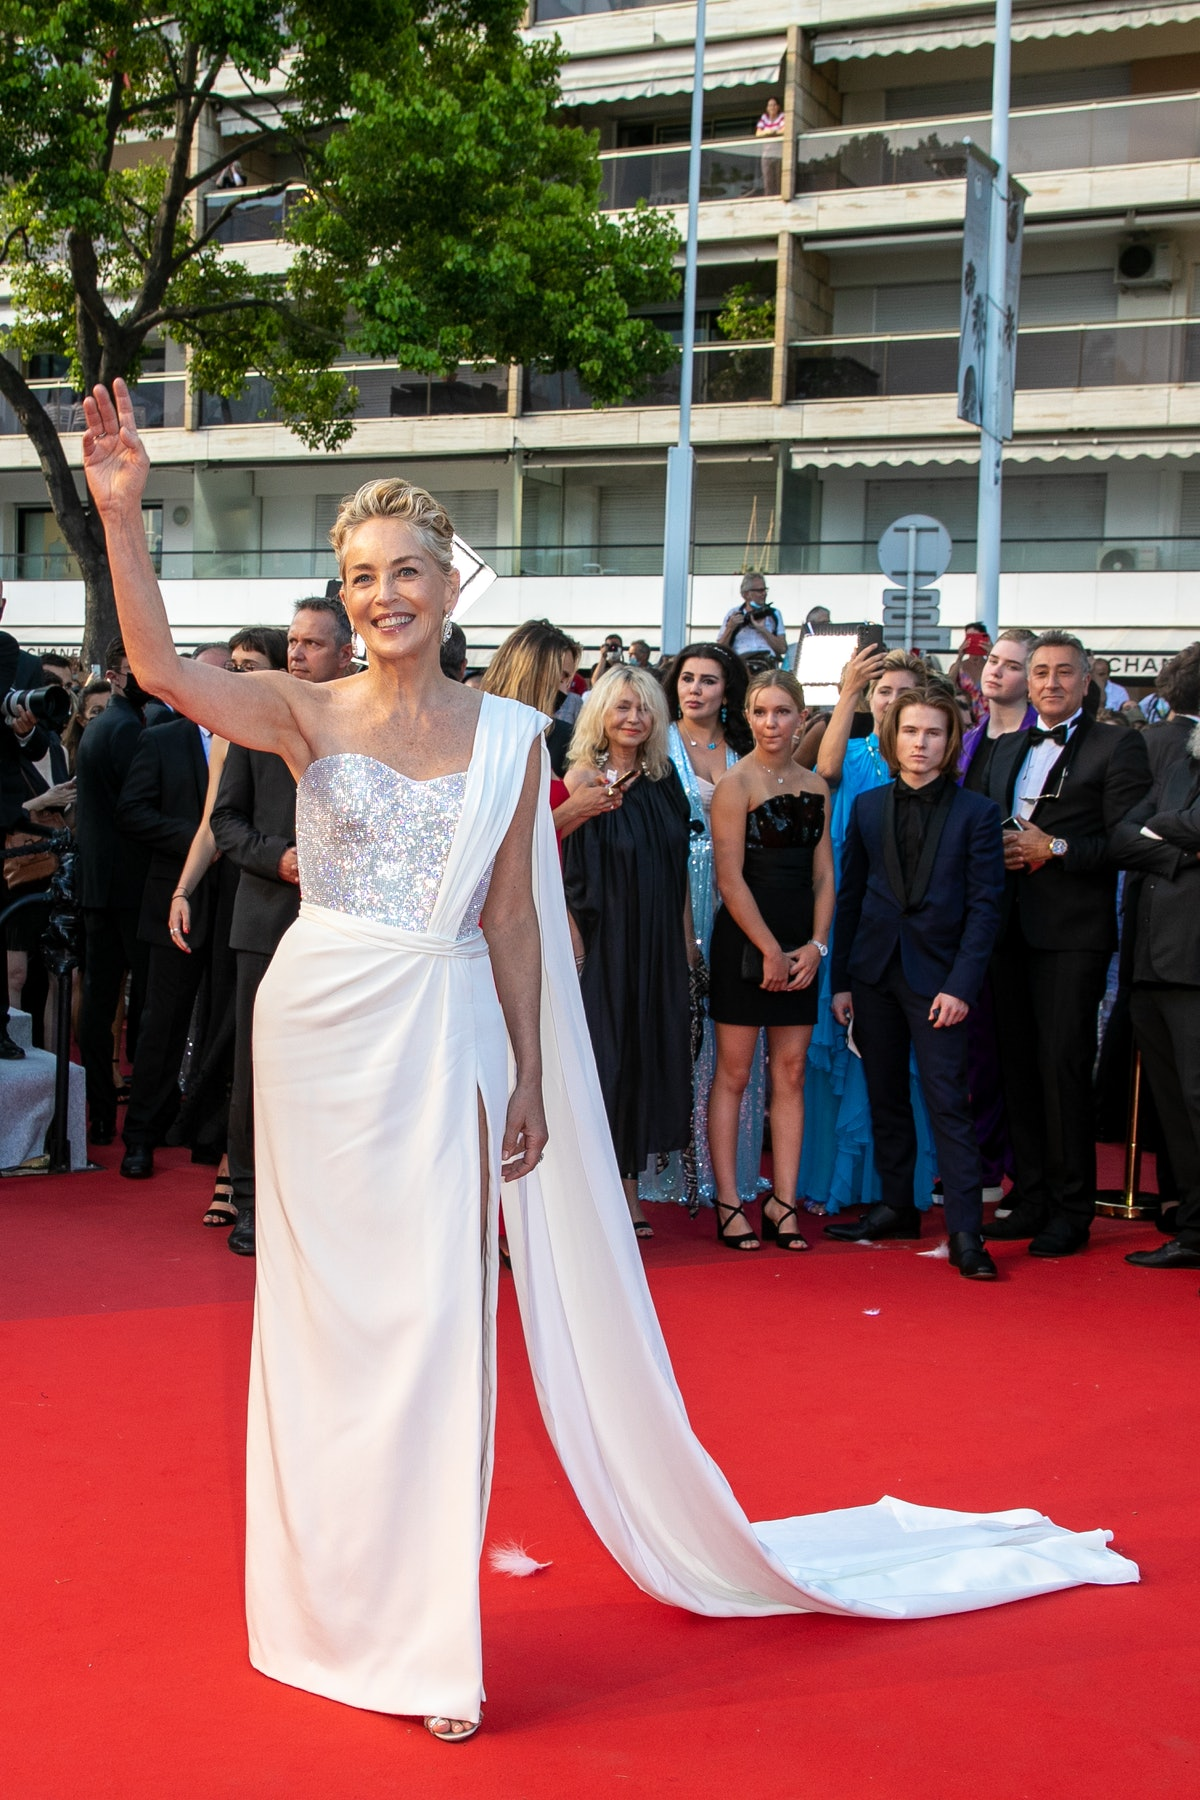 """CANNES, FRANCE - JULY 17: Actress Sharon Stone attends the final screening of """"OSS 117: From Africa With Love"""" and closing ceremony during the 74th annual Cannes Film Festival on July 17, 2021 in Cannes, France. (Photo by Marc Piasecki/FilmMagic)"""